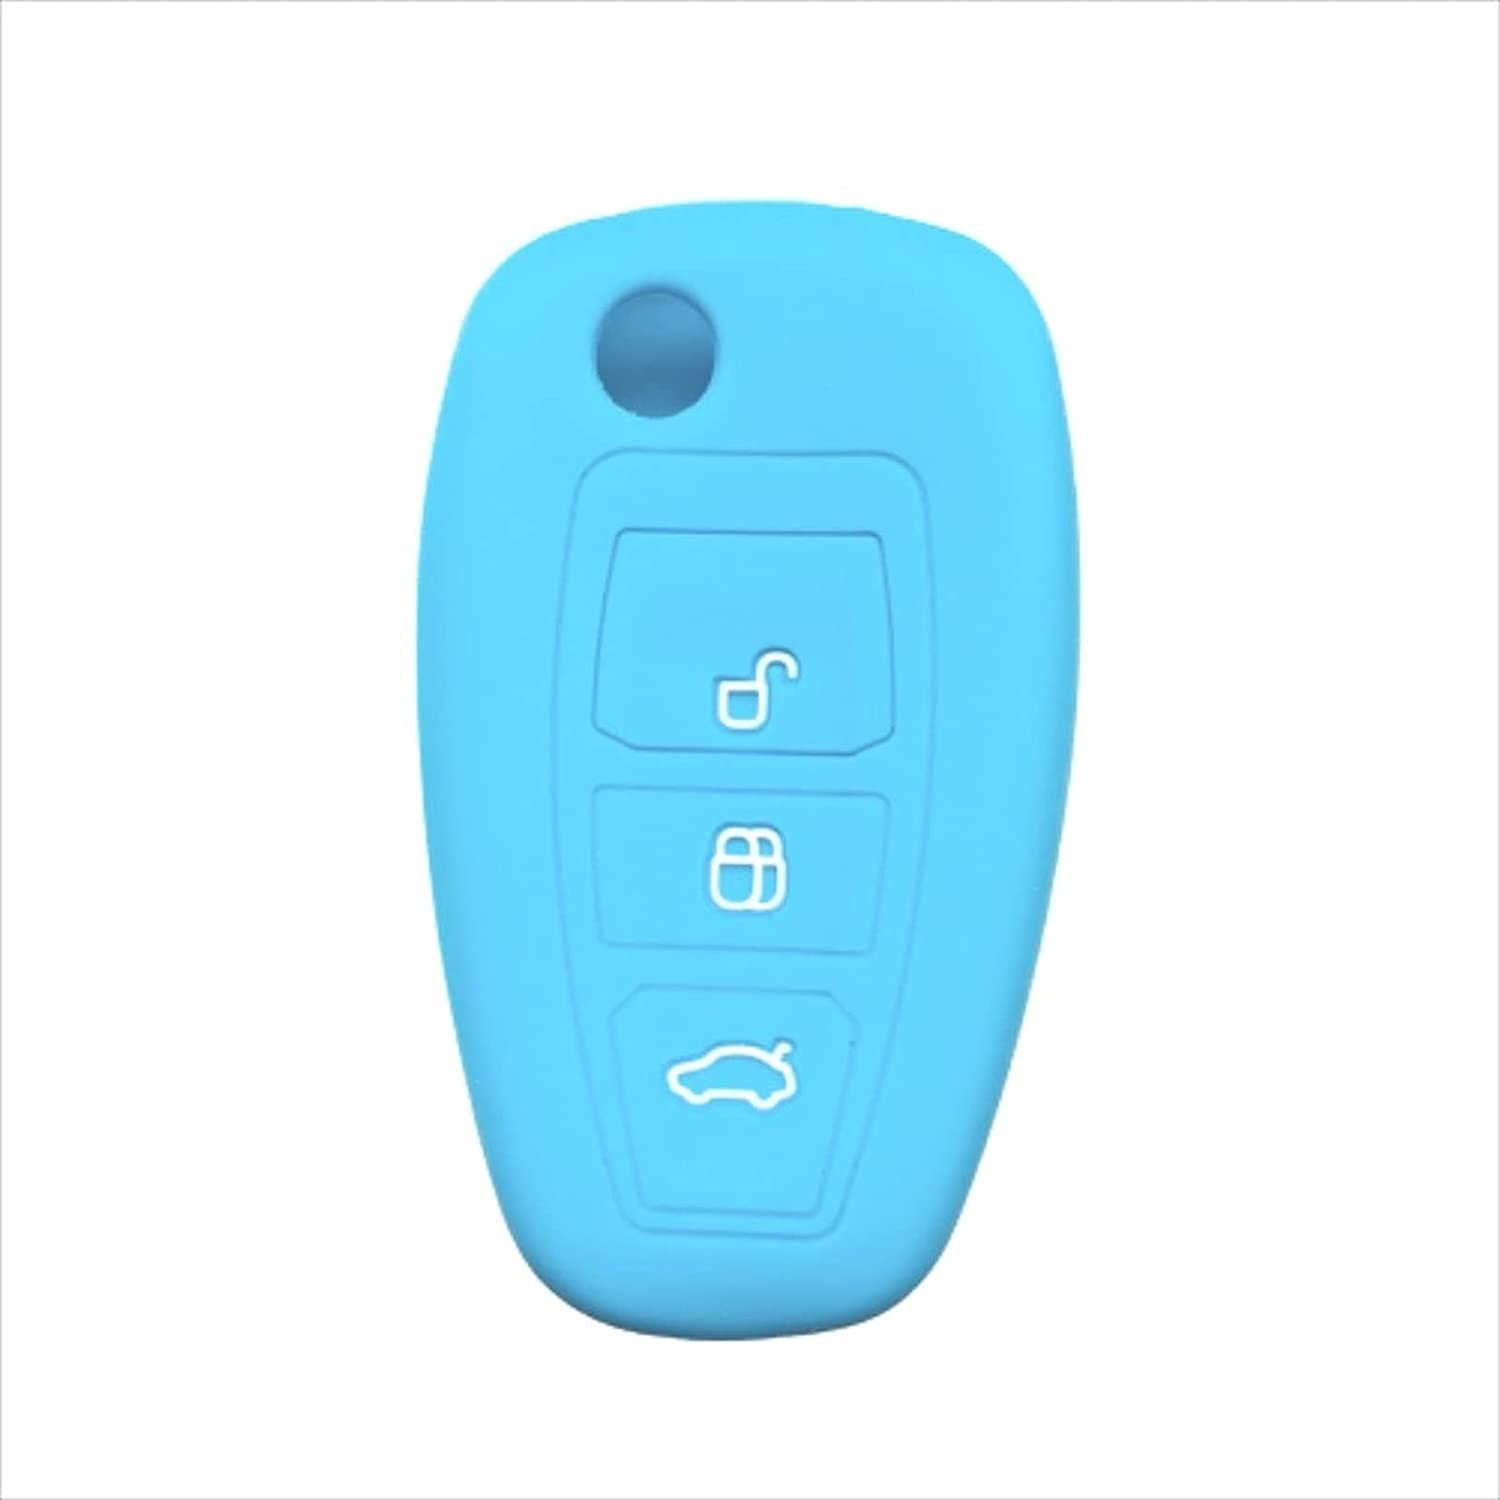 ASHDelk 3 Button Custom Challenge the lowest Max 88% OFF price of Japan ☆ Silicone Car F Case Key Fob Cover Remote